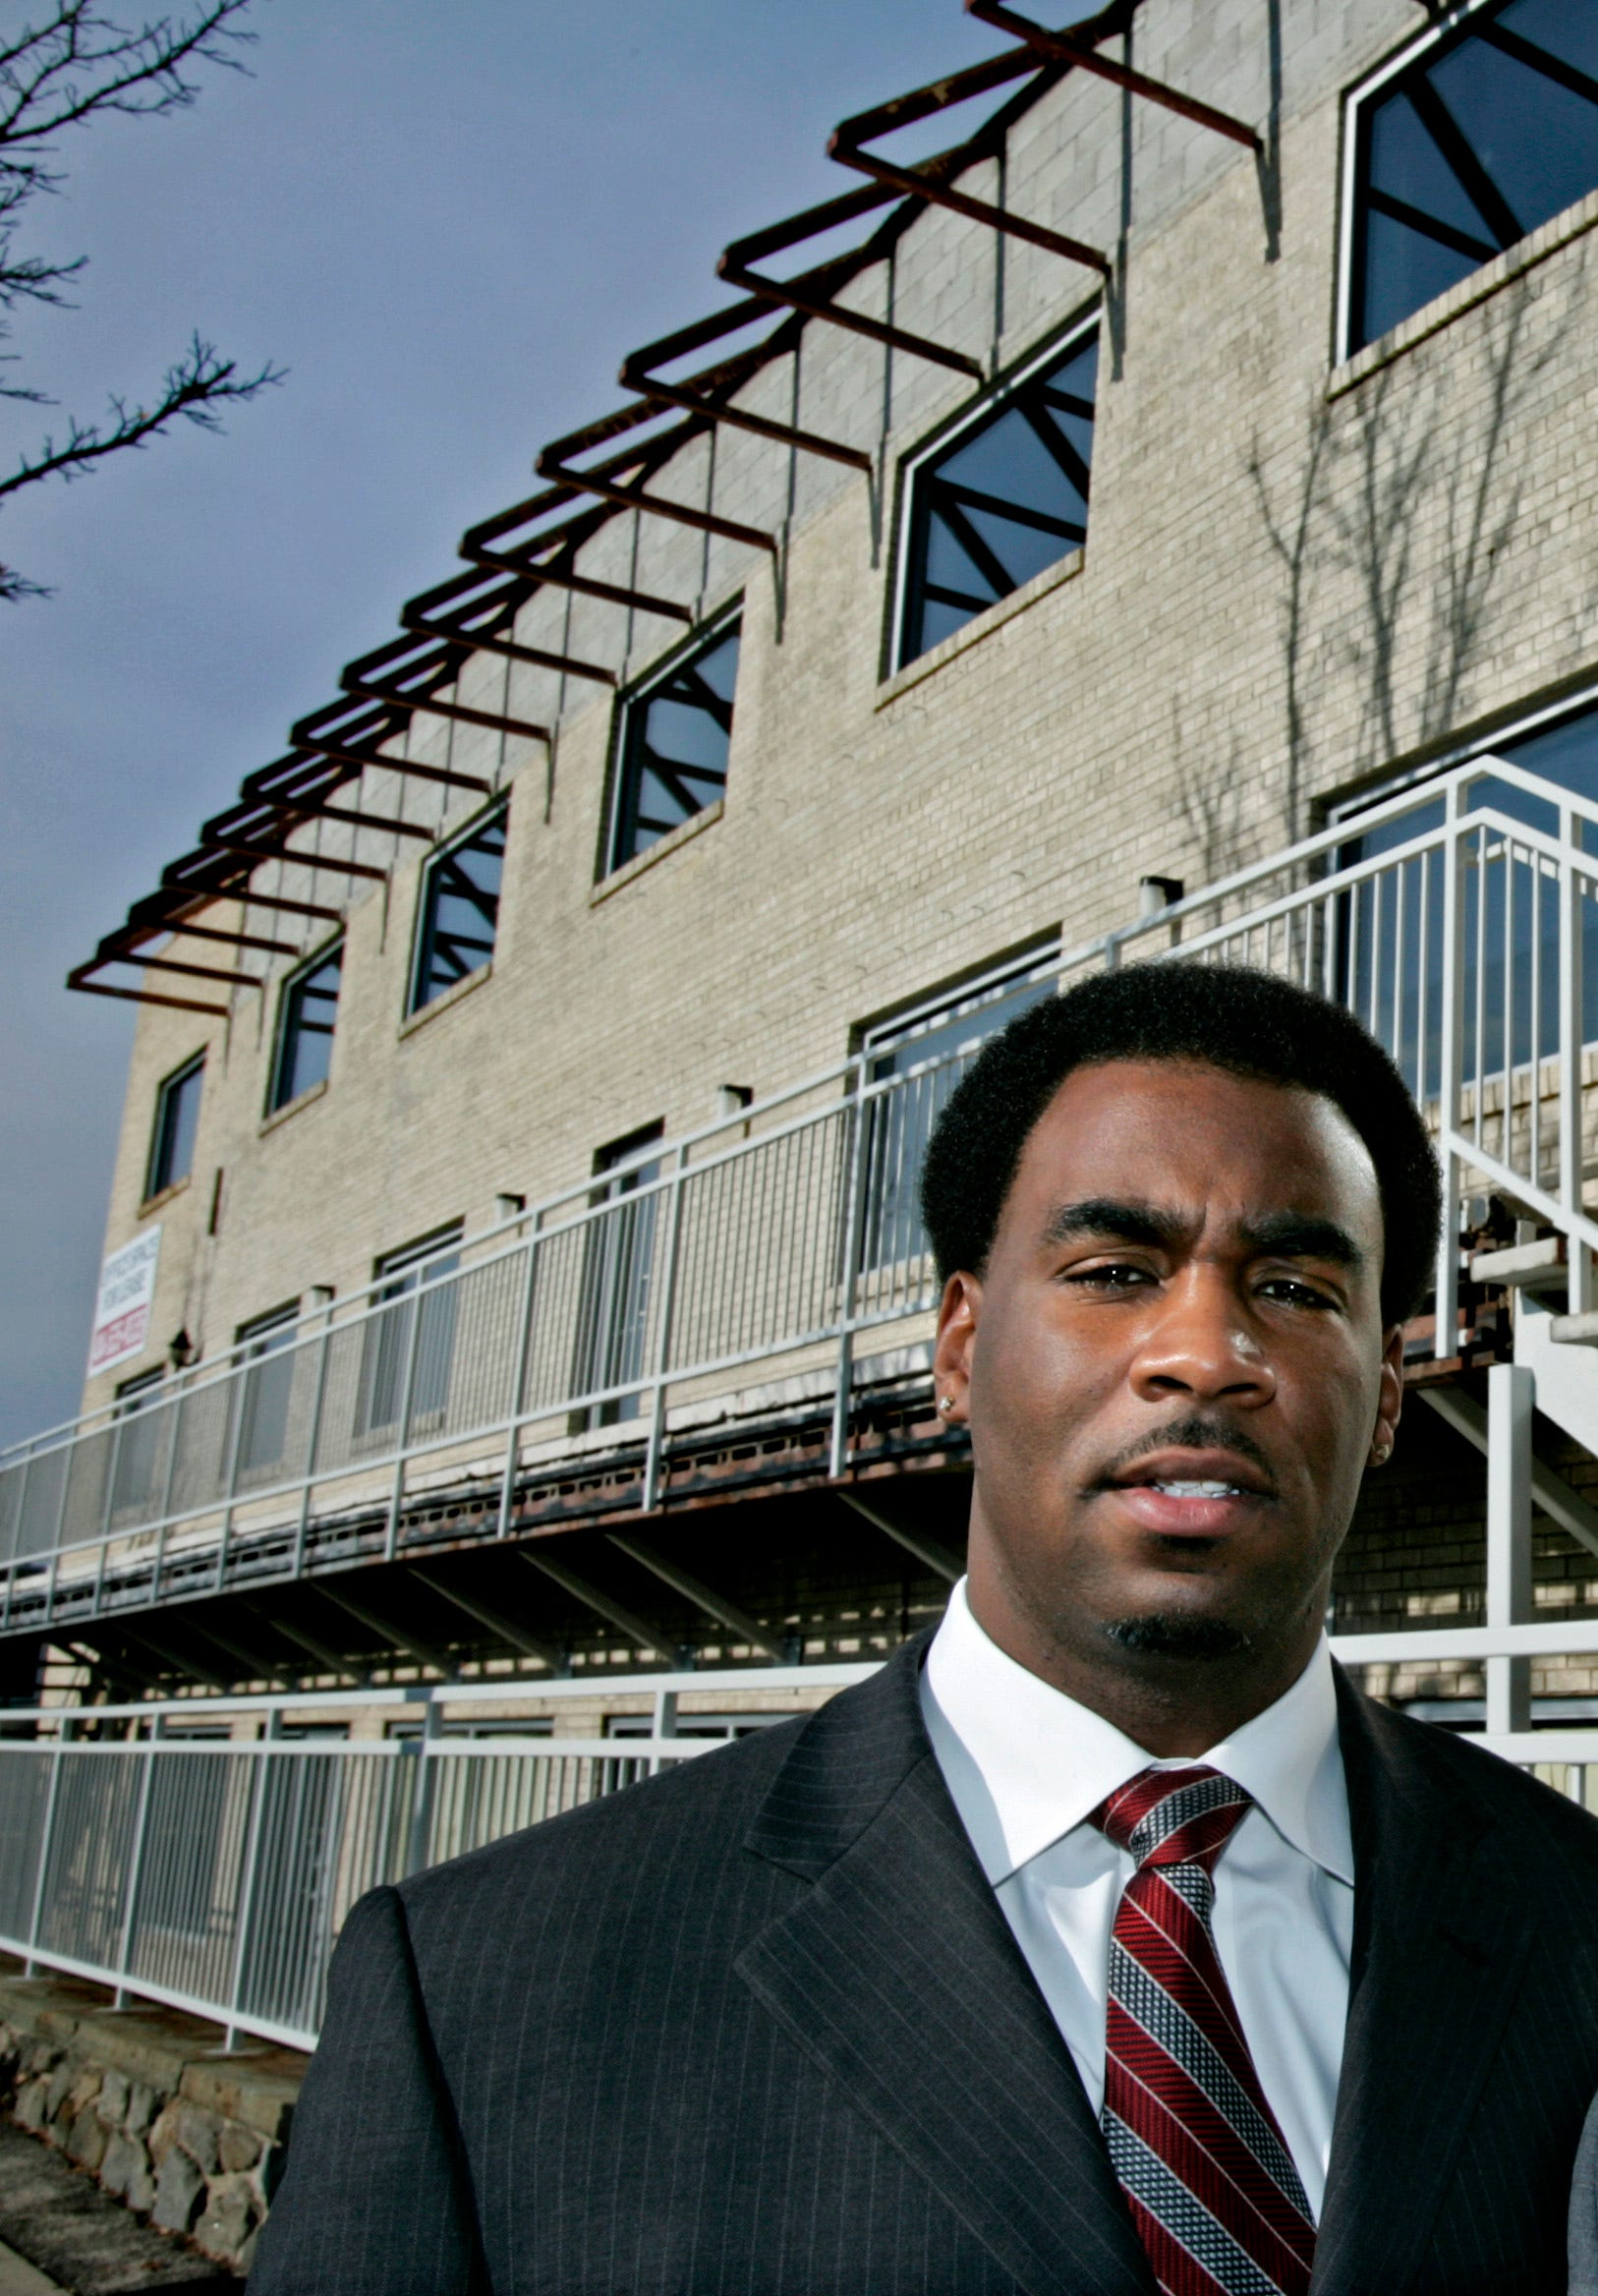 Kalan Haywood Sr., shown here in 2005, started his first real estate development company, Vanguard Group, in 2000.